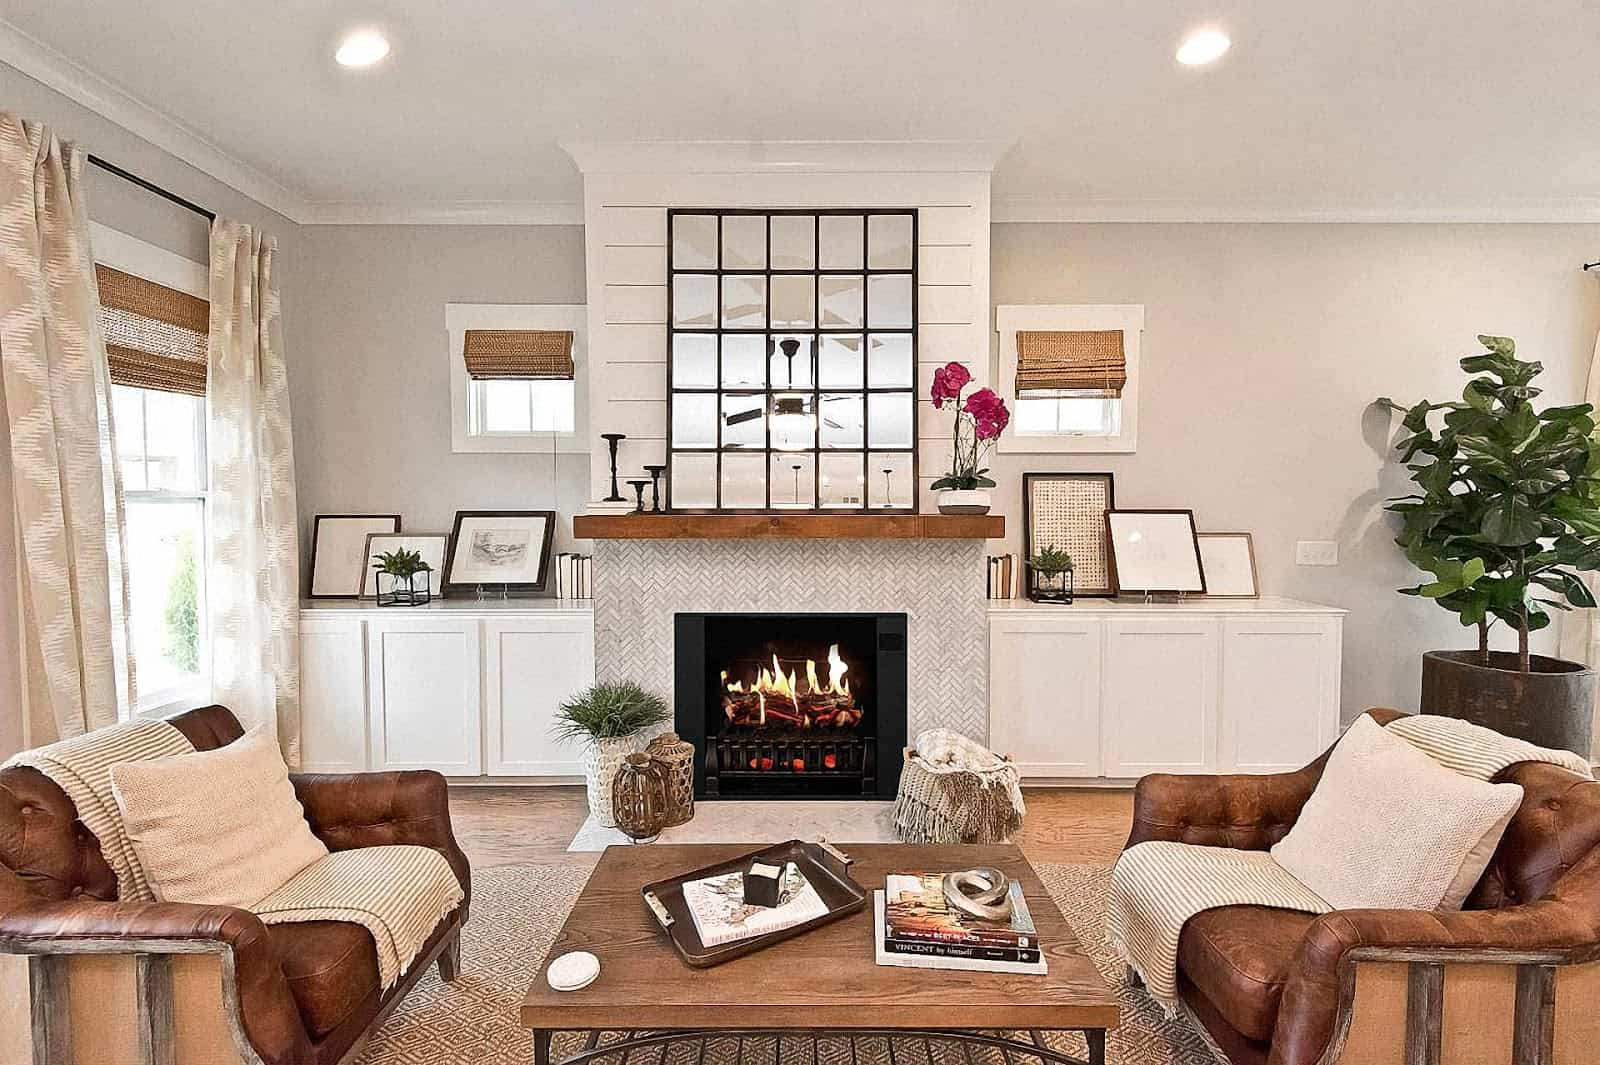 Are Vents Needed for LED Fireplaces